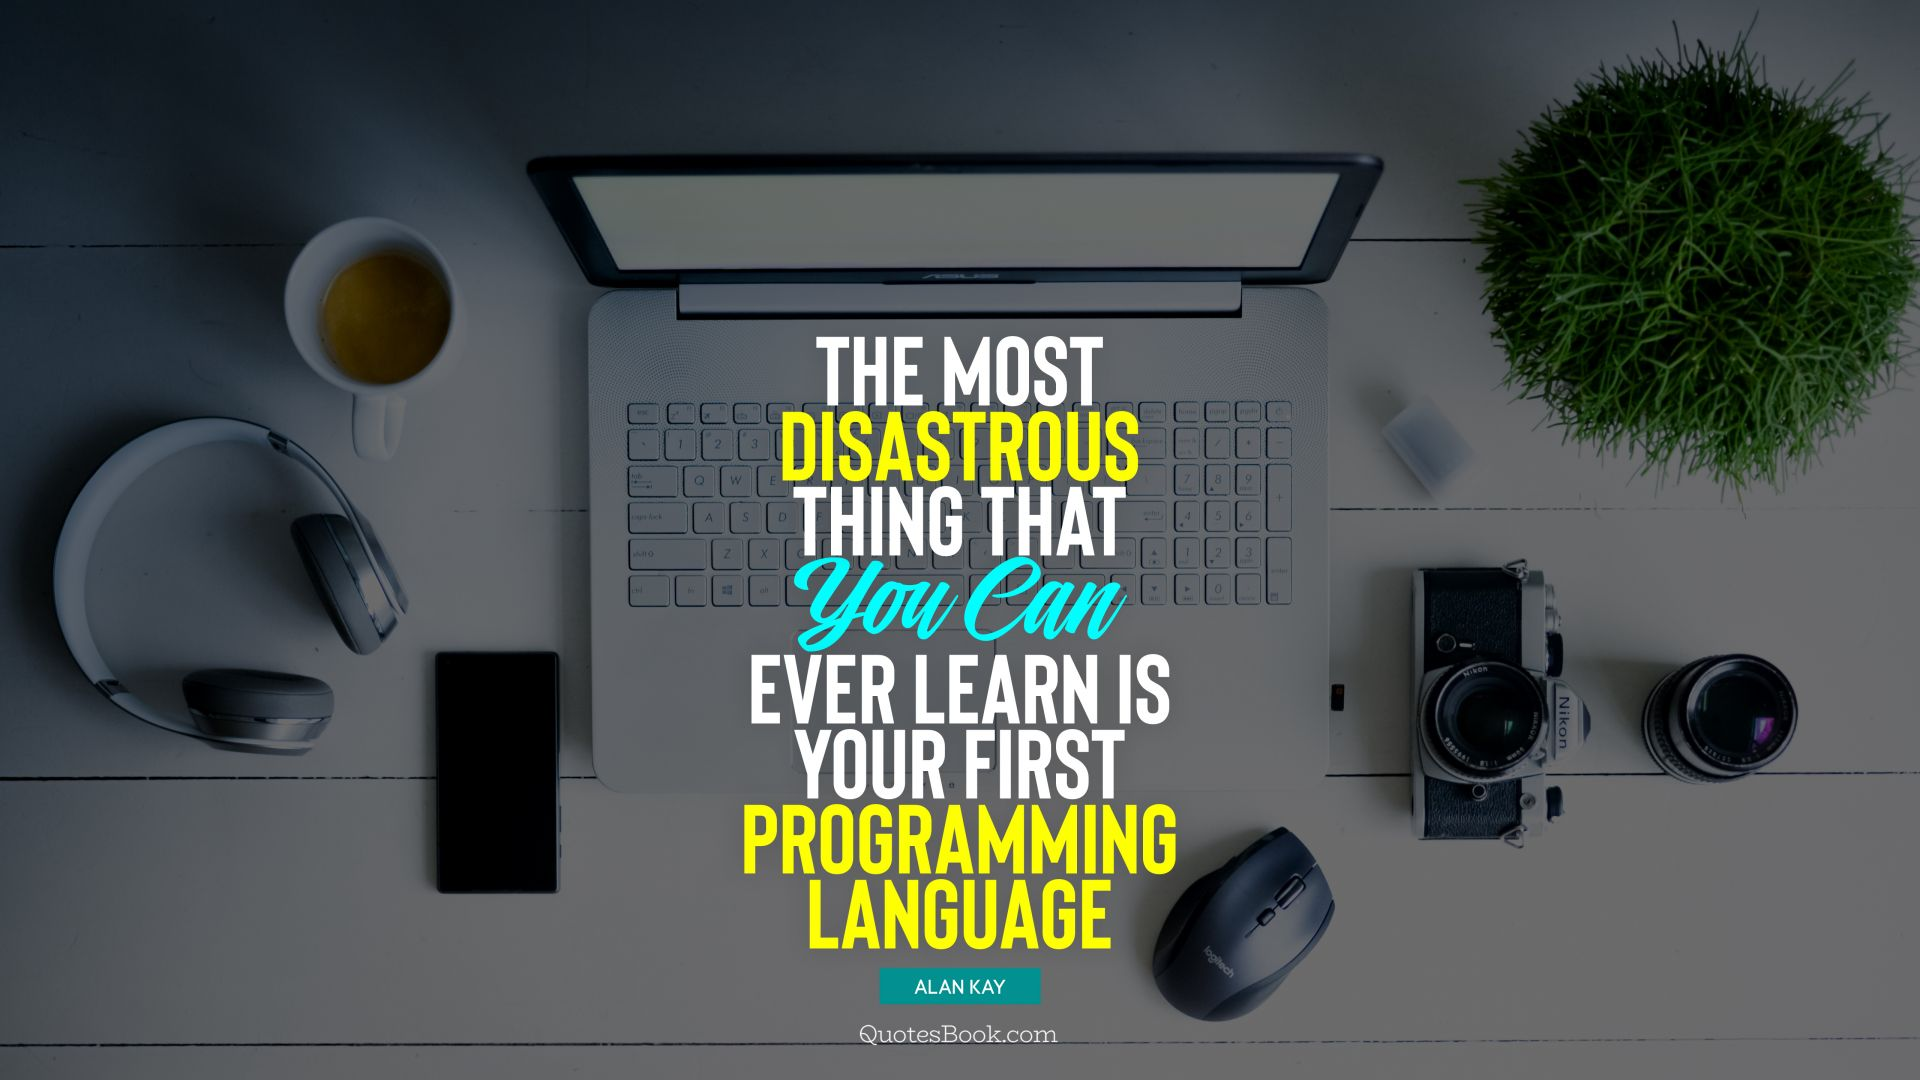 The most disastrous thing that you can ever learn is your first programming language. - Quote by Alan Kay